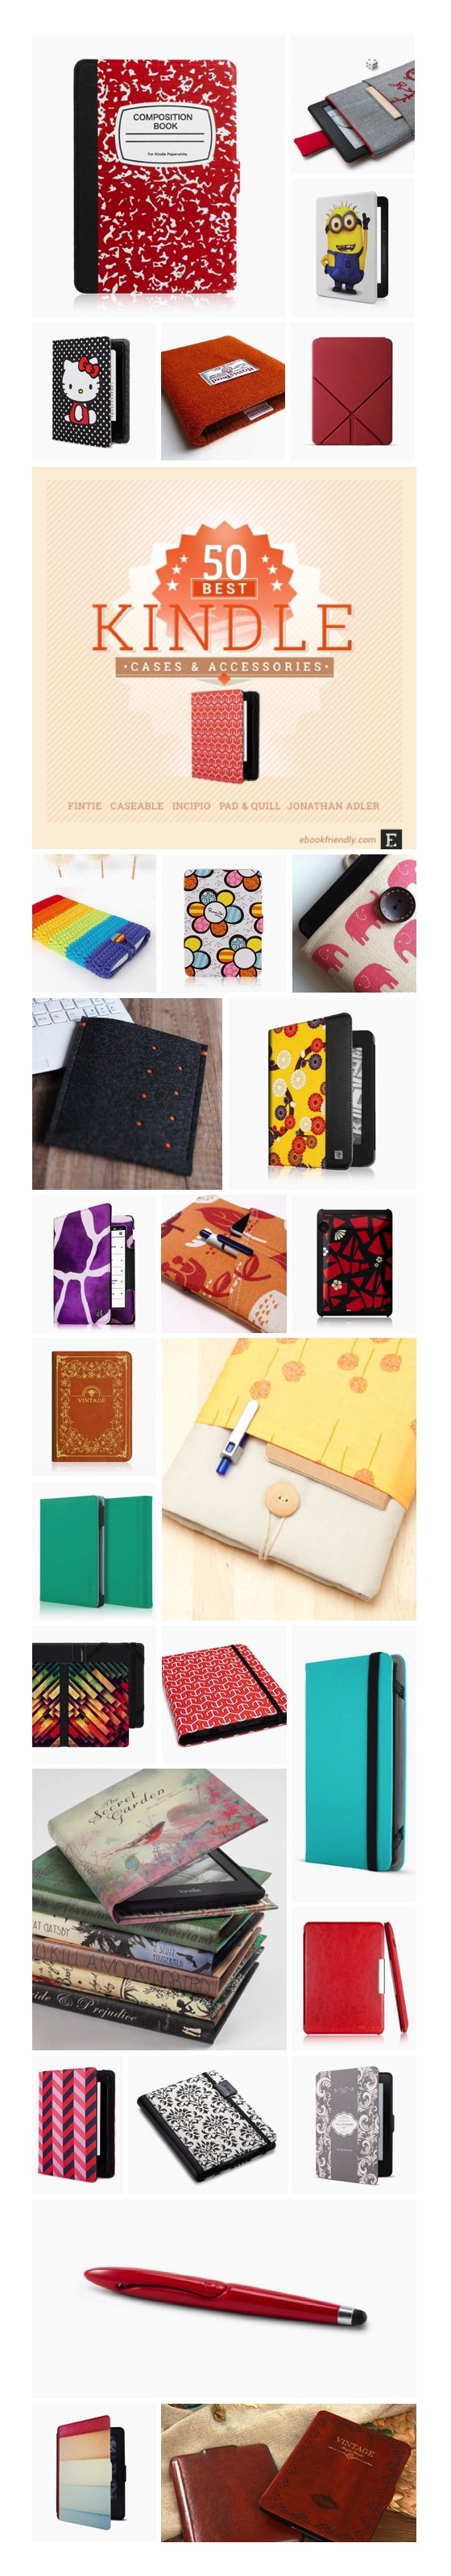 Best Kindle cases and accessories #infographic